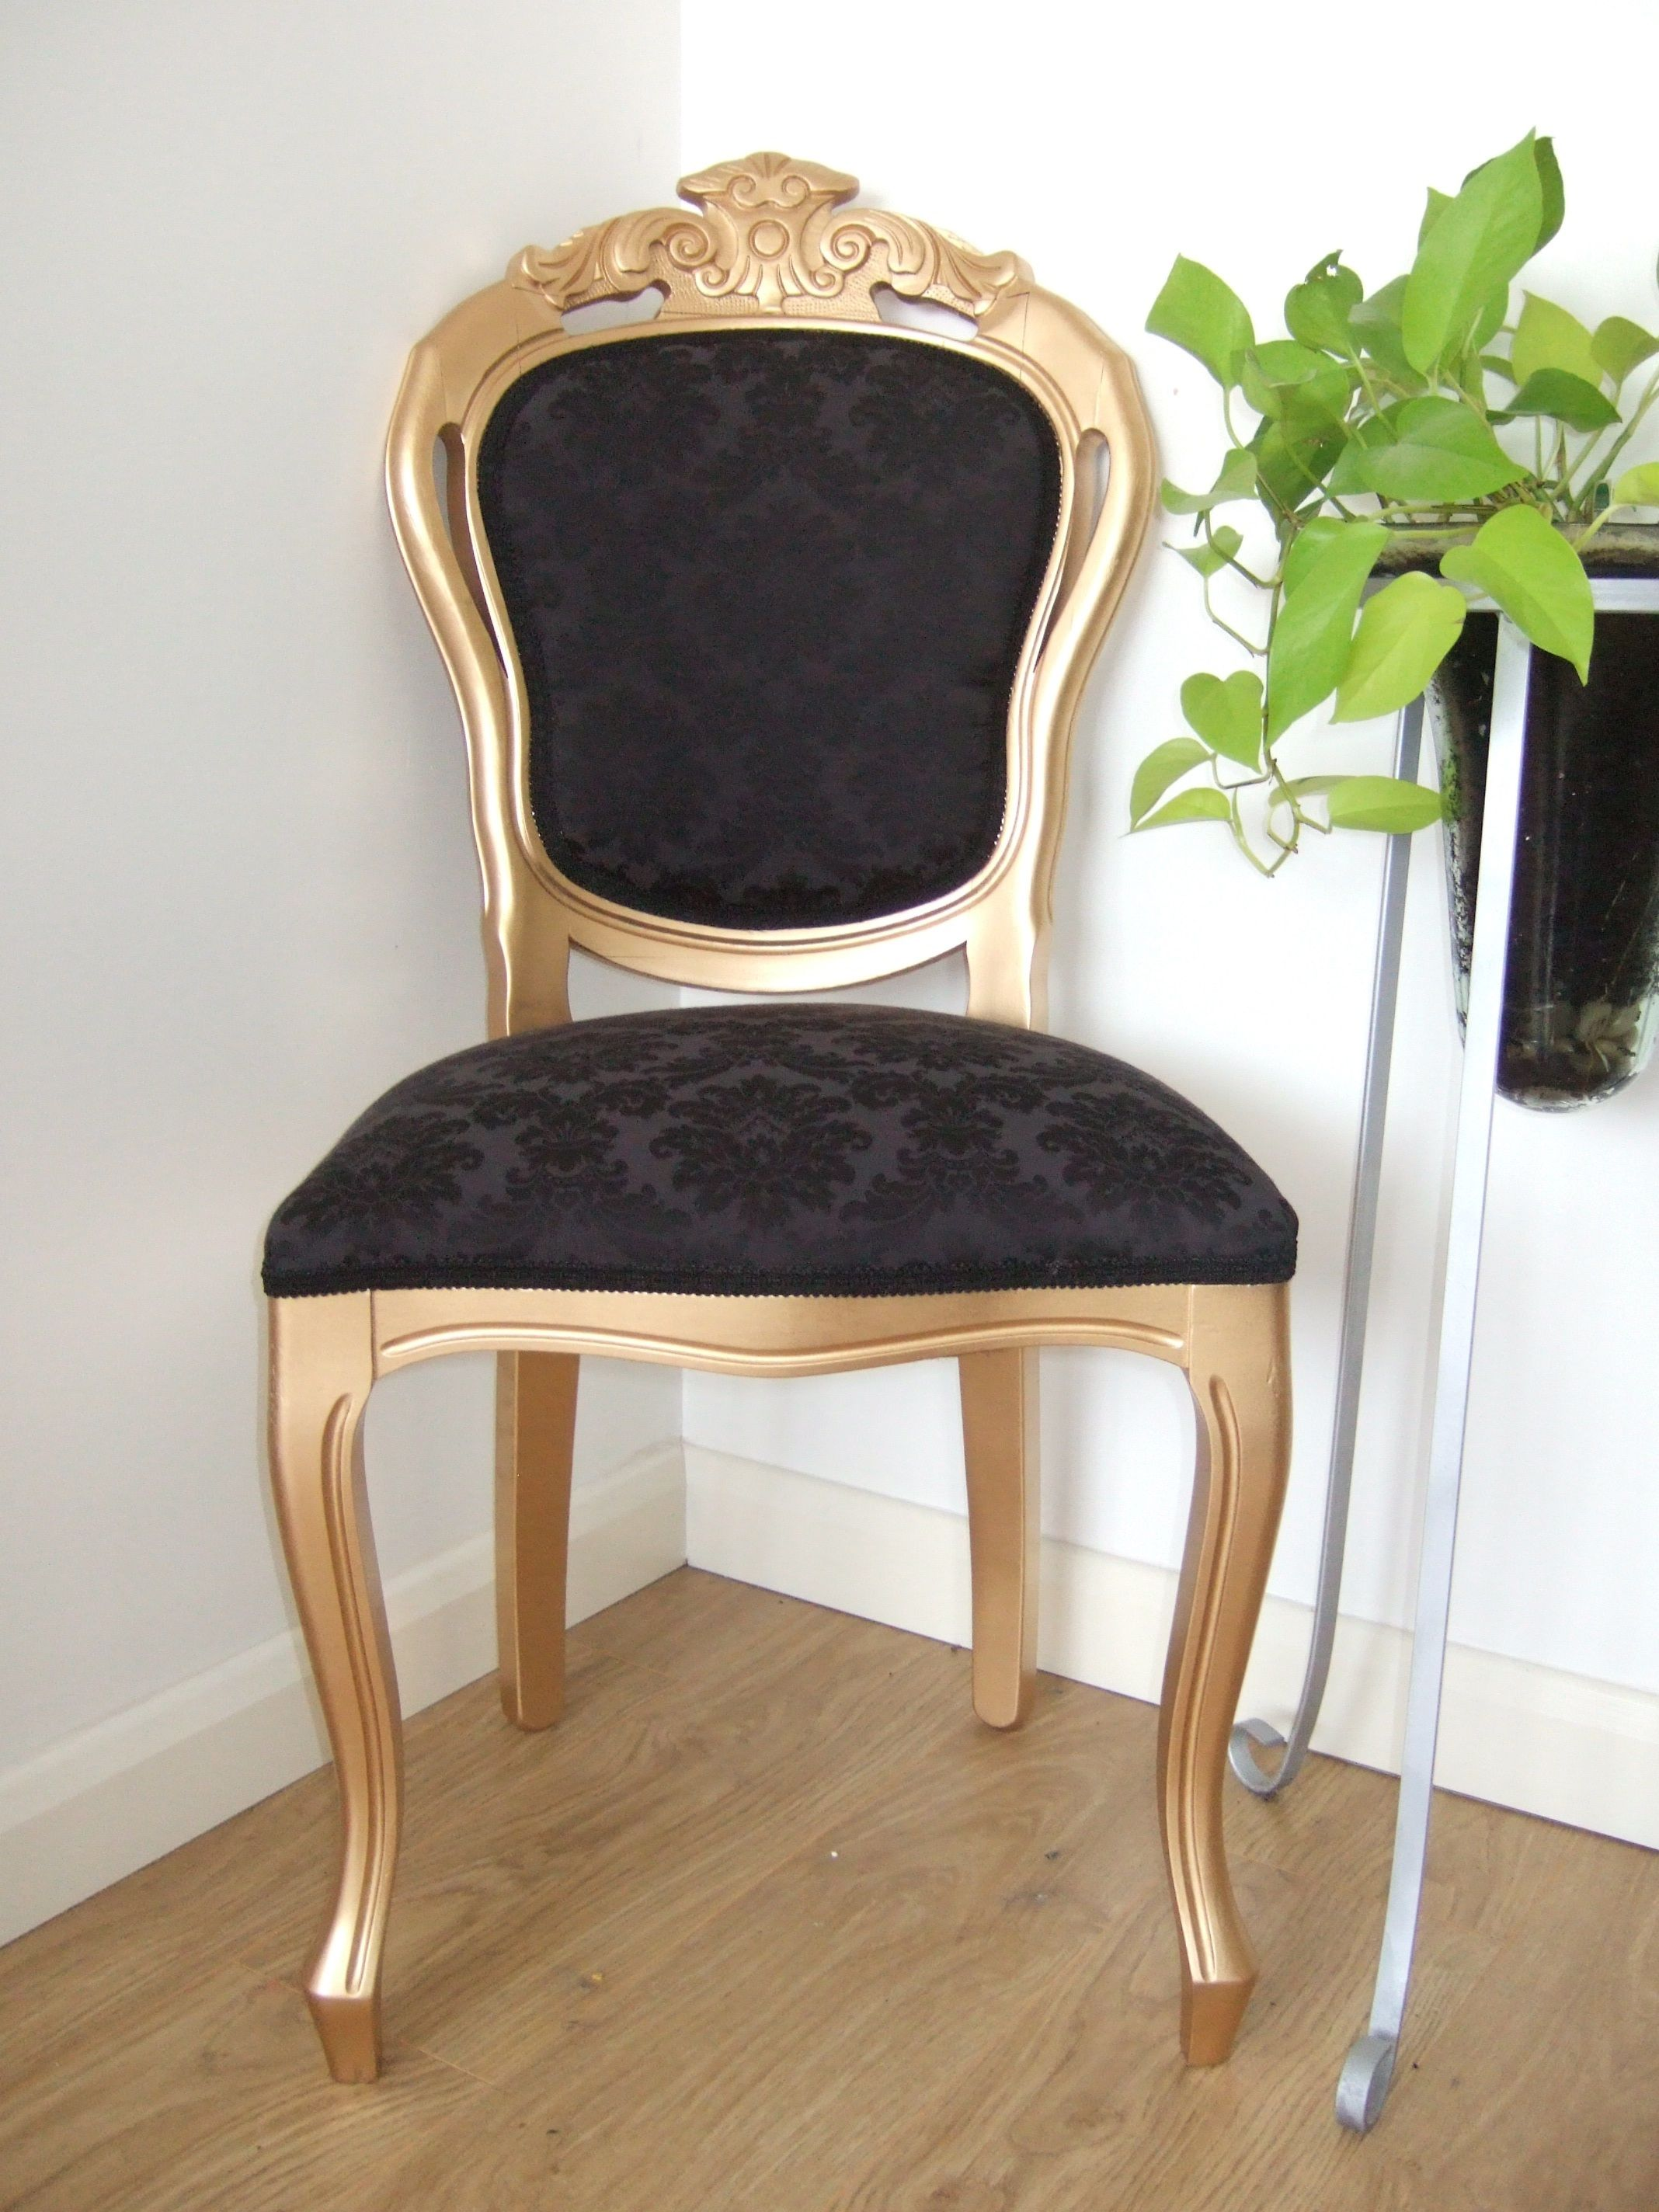 Shimmery Gold French/Italian Dining Chair With Black Damask Fabric Added  With A Black Lace